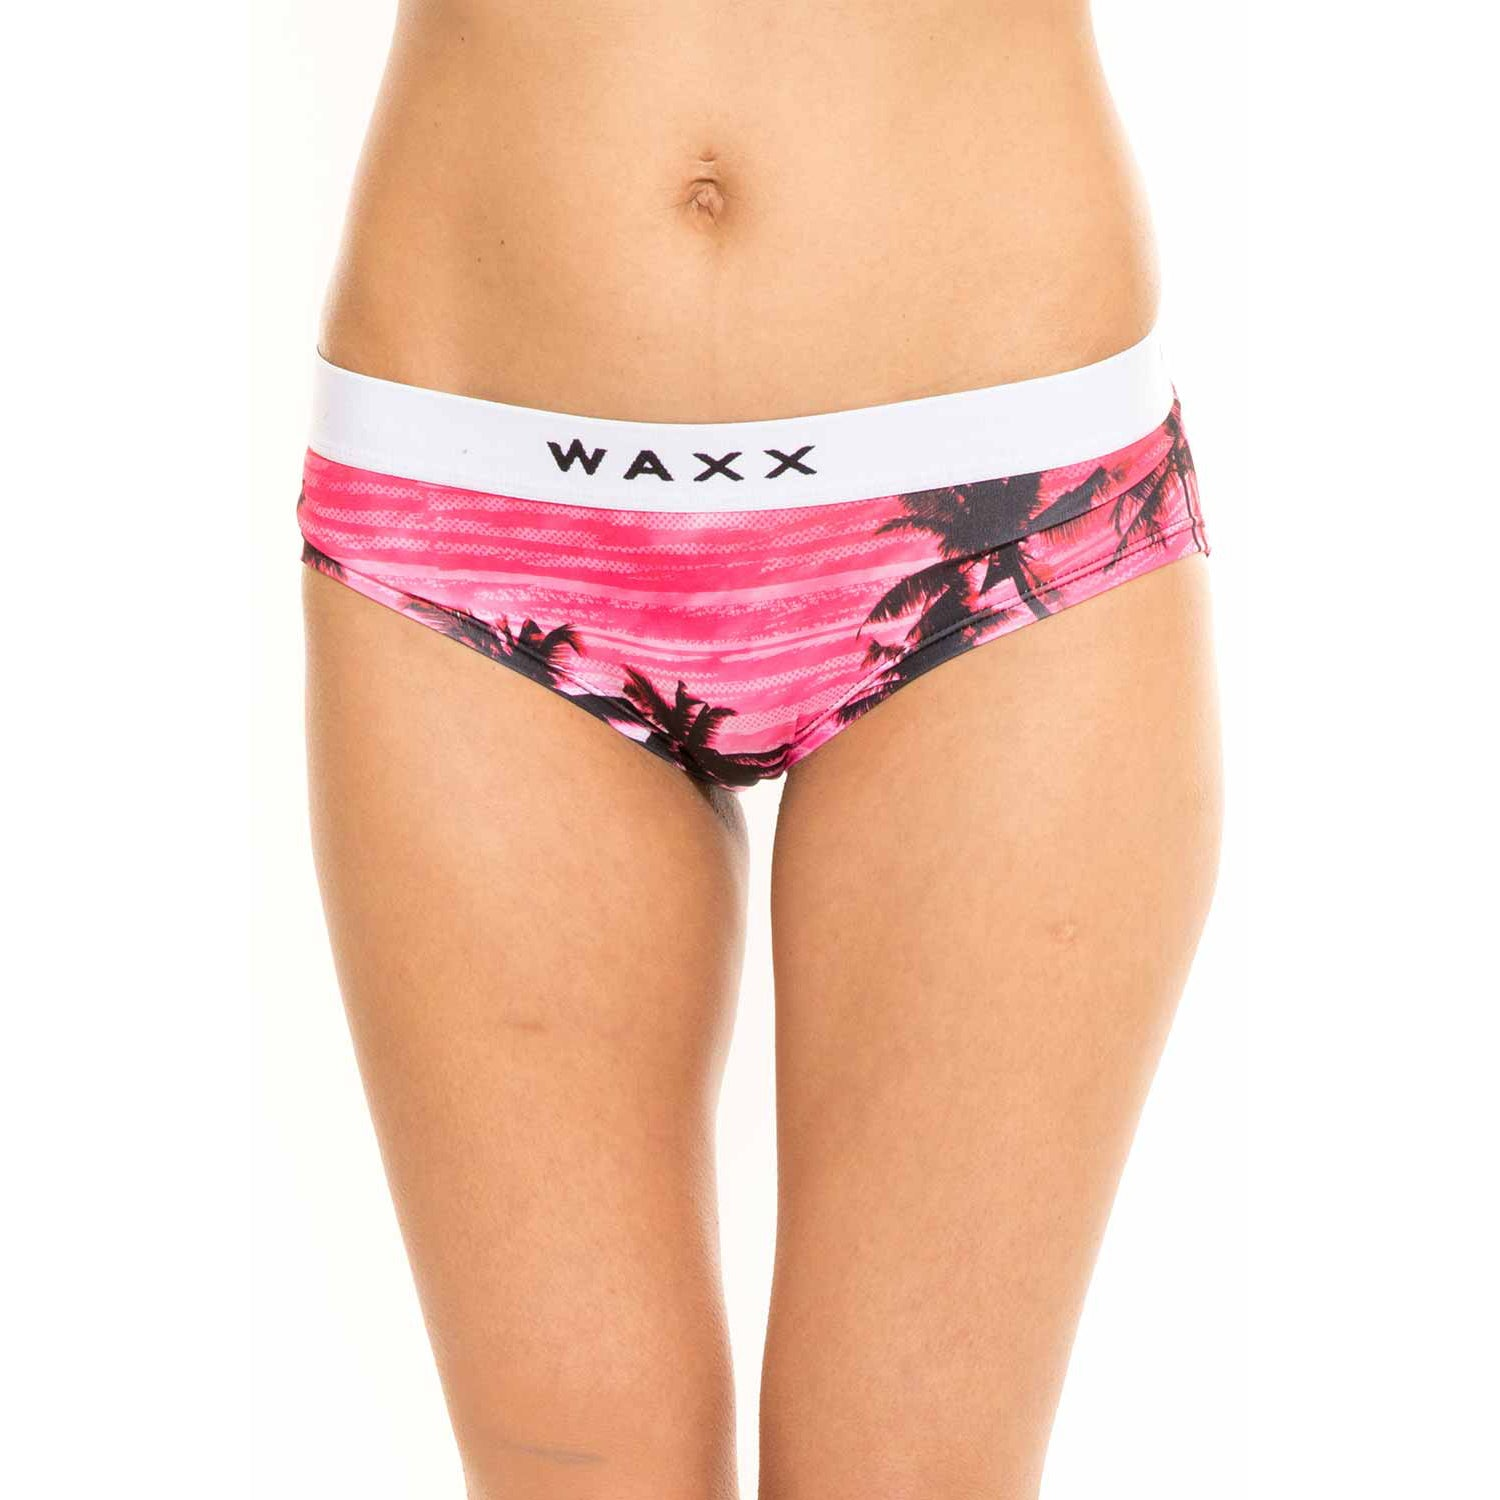 Waxx Ladies Microfibre Boy Short Rio